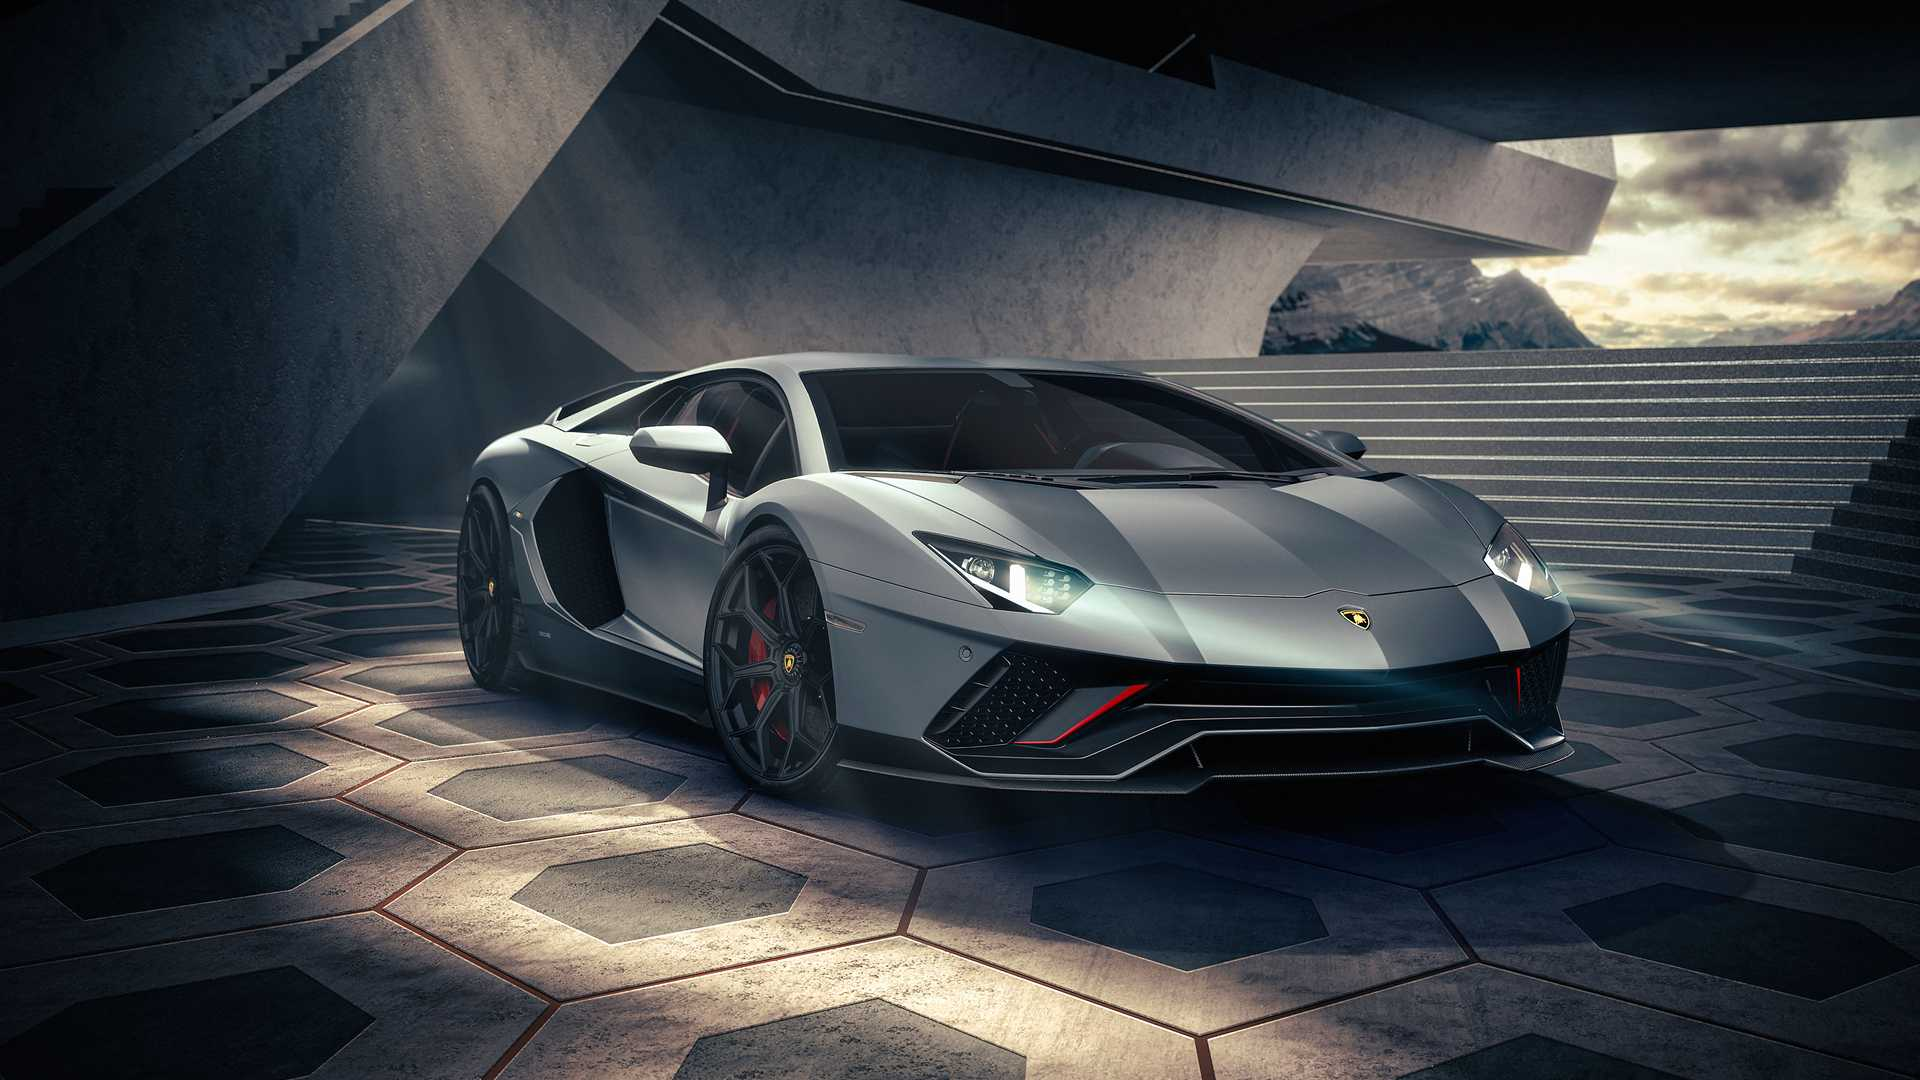 The Lambo Aventador has lingered in production for over a decade now, but the special edition named LP 780-4 Ultimae will be its swan song. Let's hear it!